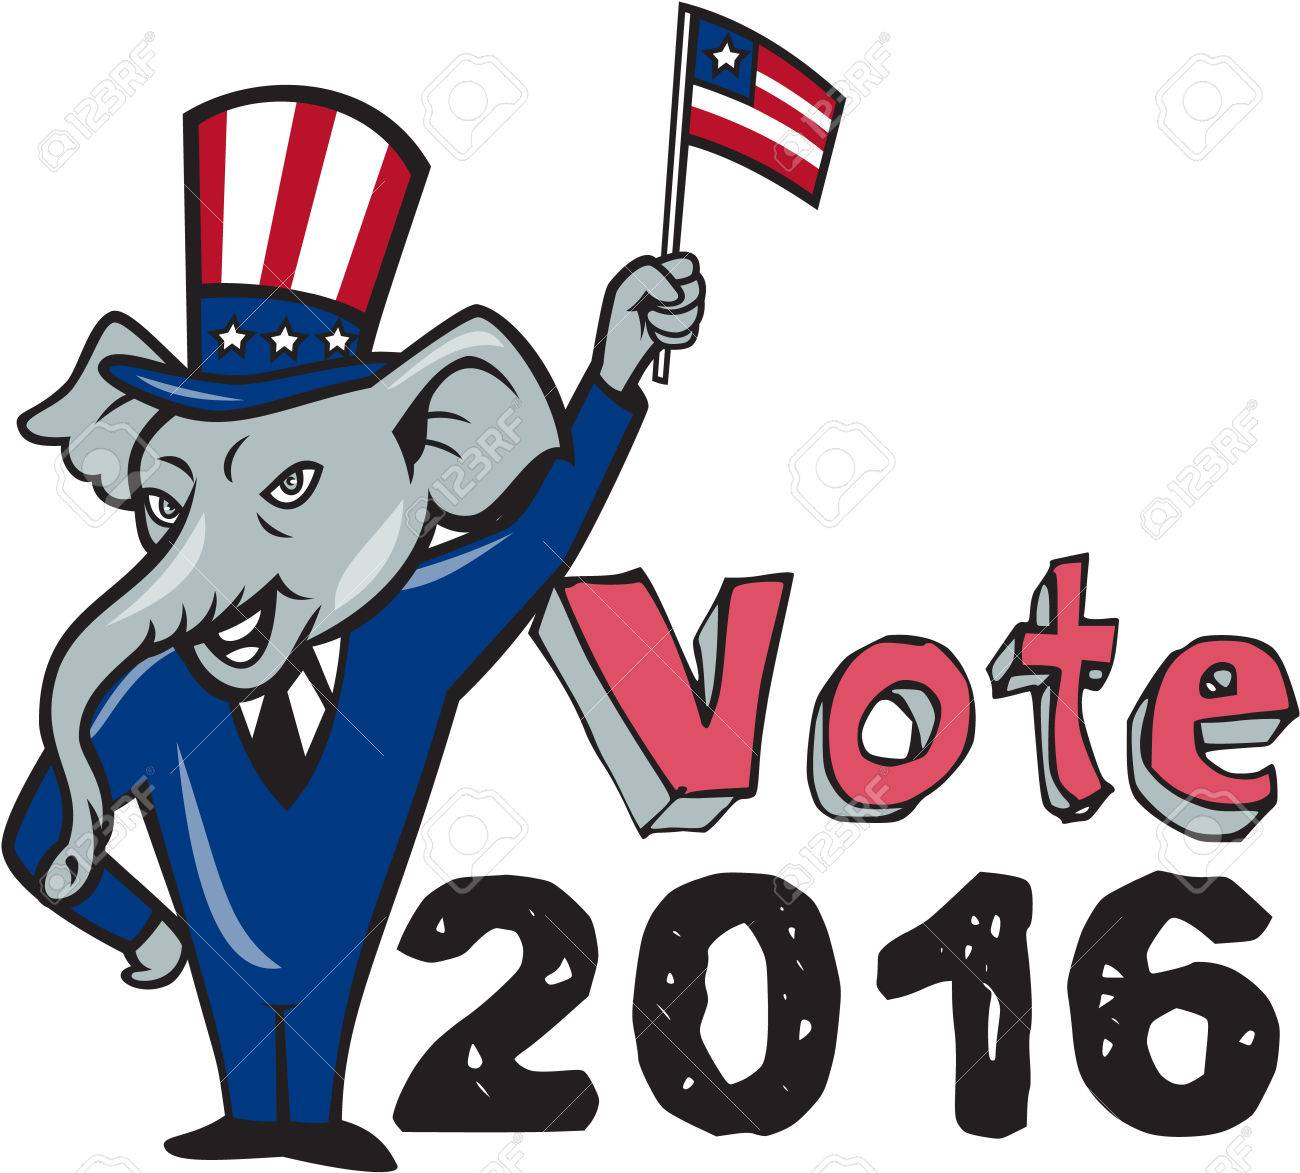 http://previews.123rf.com/images/patrimonio/patrimonio1510/patrimonio151000099/47009453-Illustration-of-a-republican-elephant-mascot-of-the-republican-grand-old-party-gop-smiling-looking-t-Stock-Vector.jpg